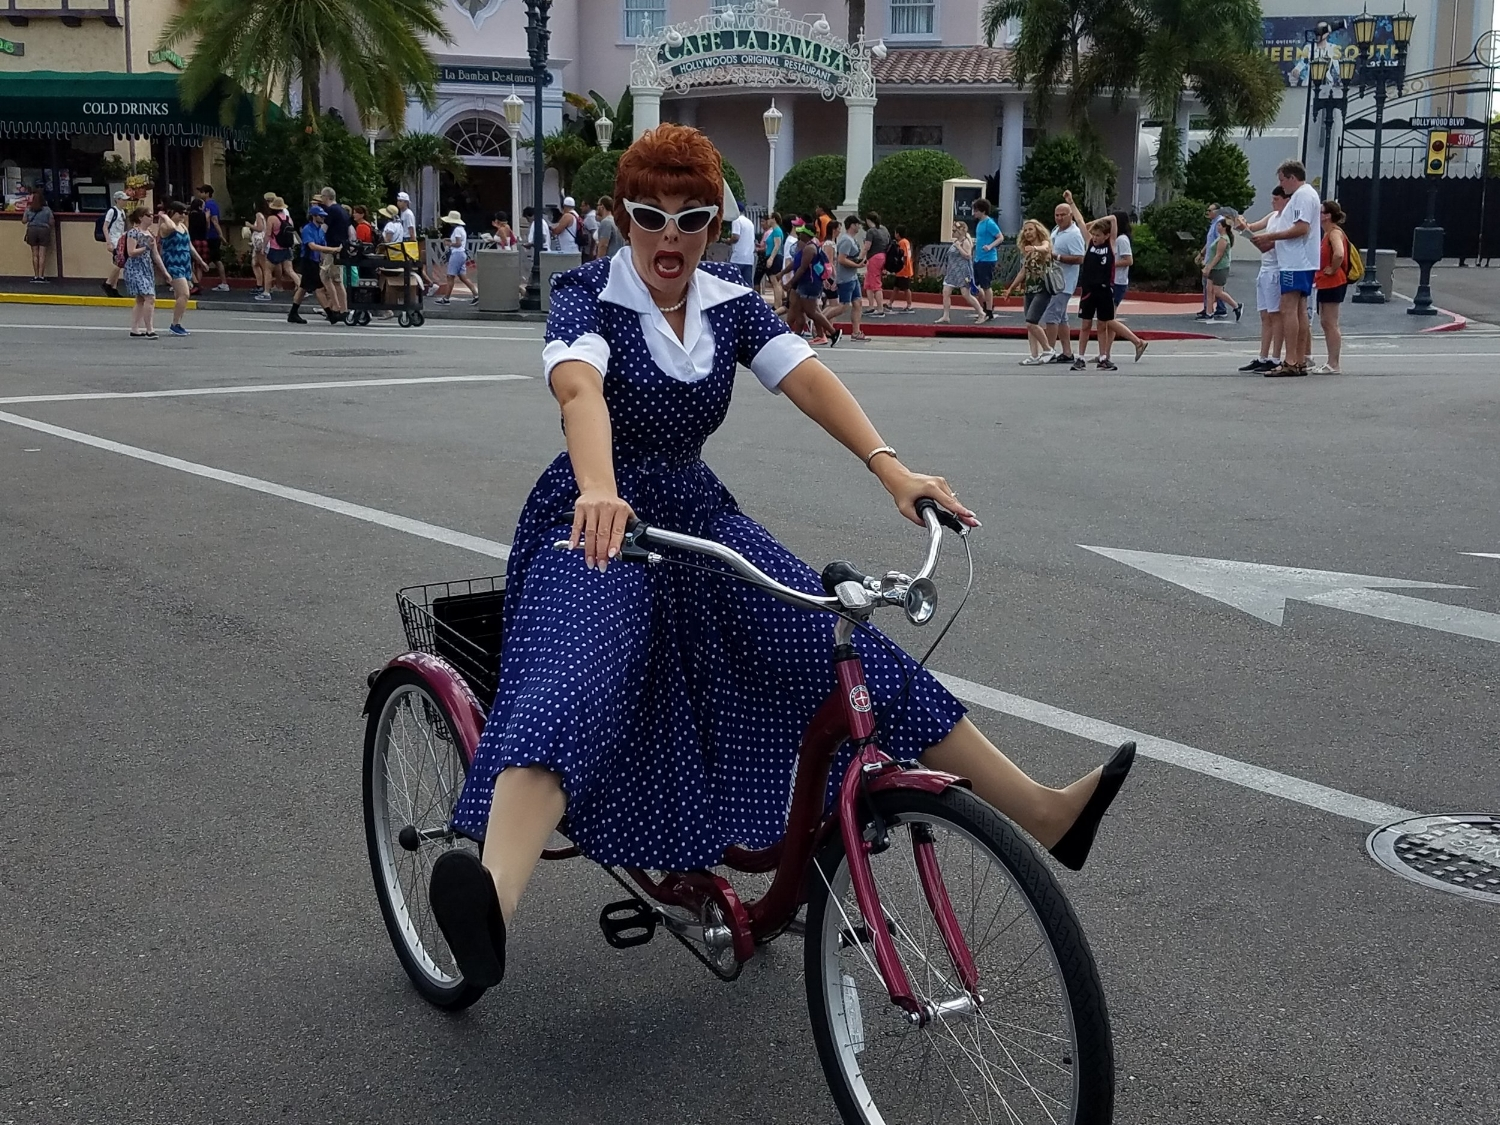 Lucy on her Bike